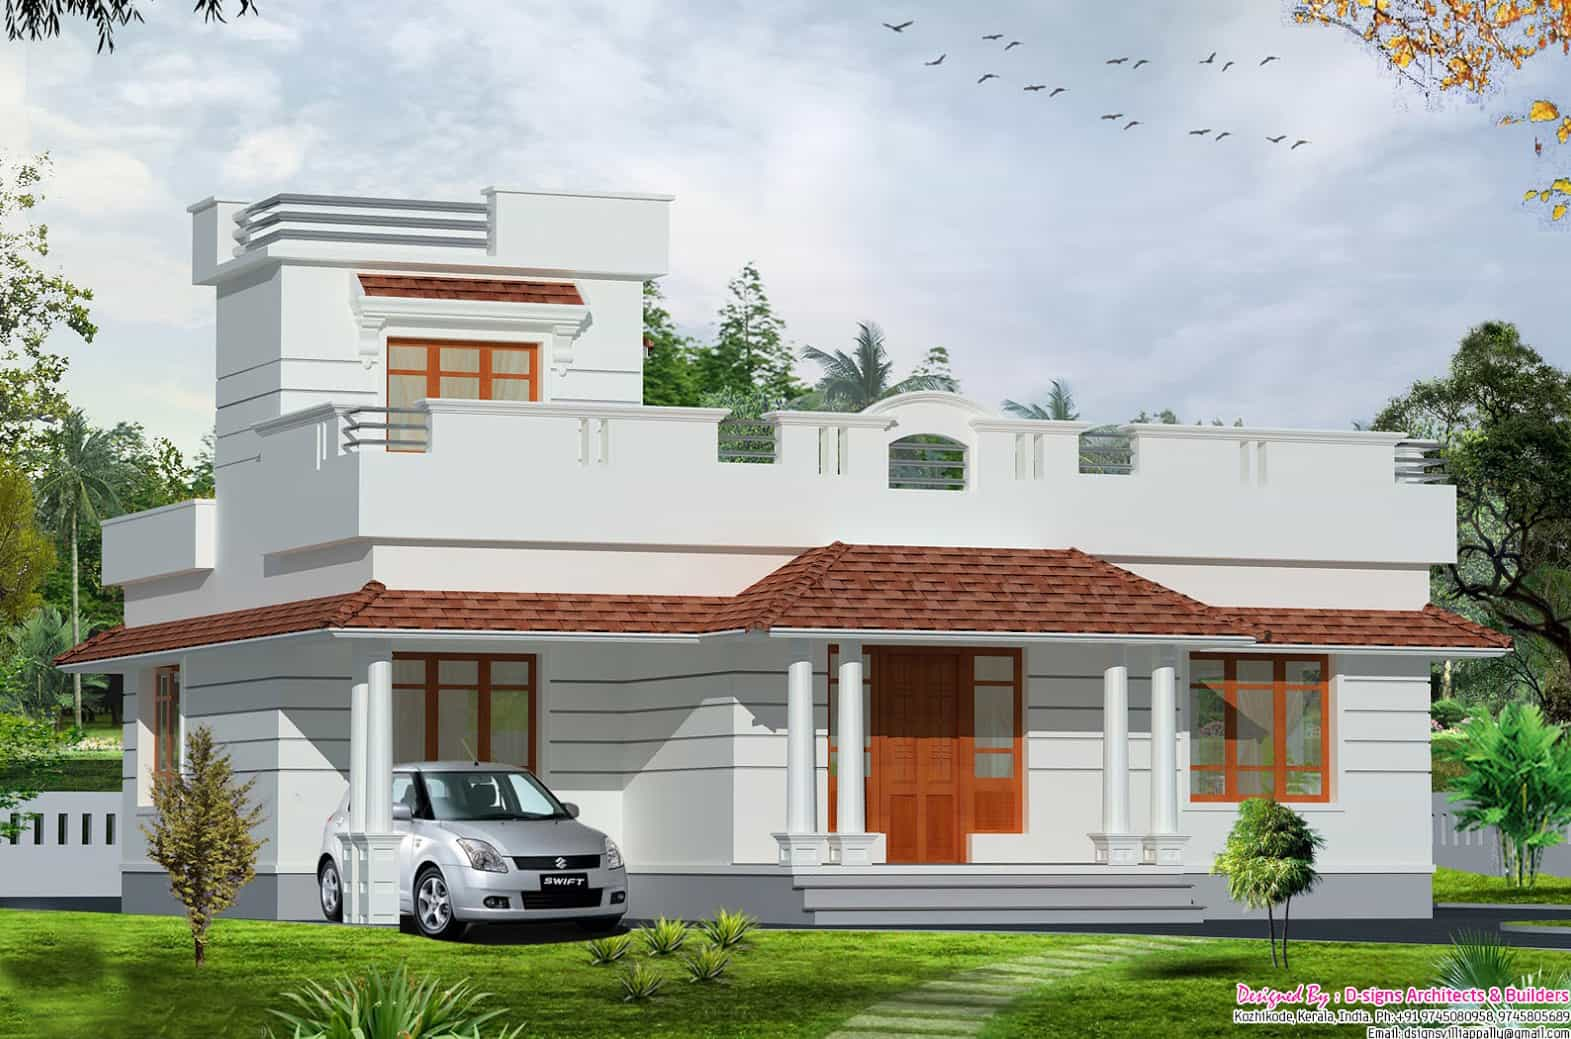 House Design One Floor Kerala Style 2bhk Budget Home Design At 1200 Sq.ft.